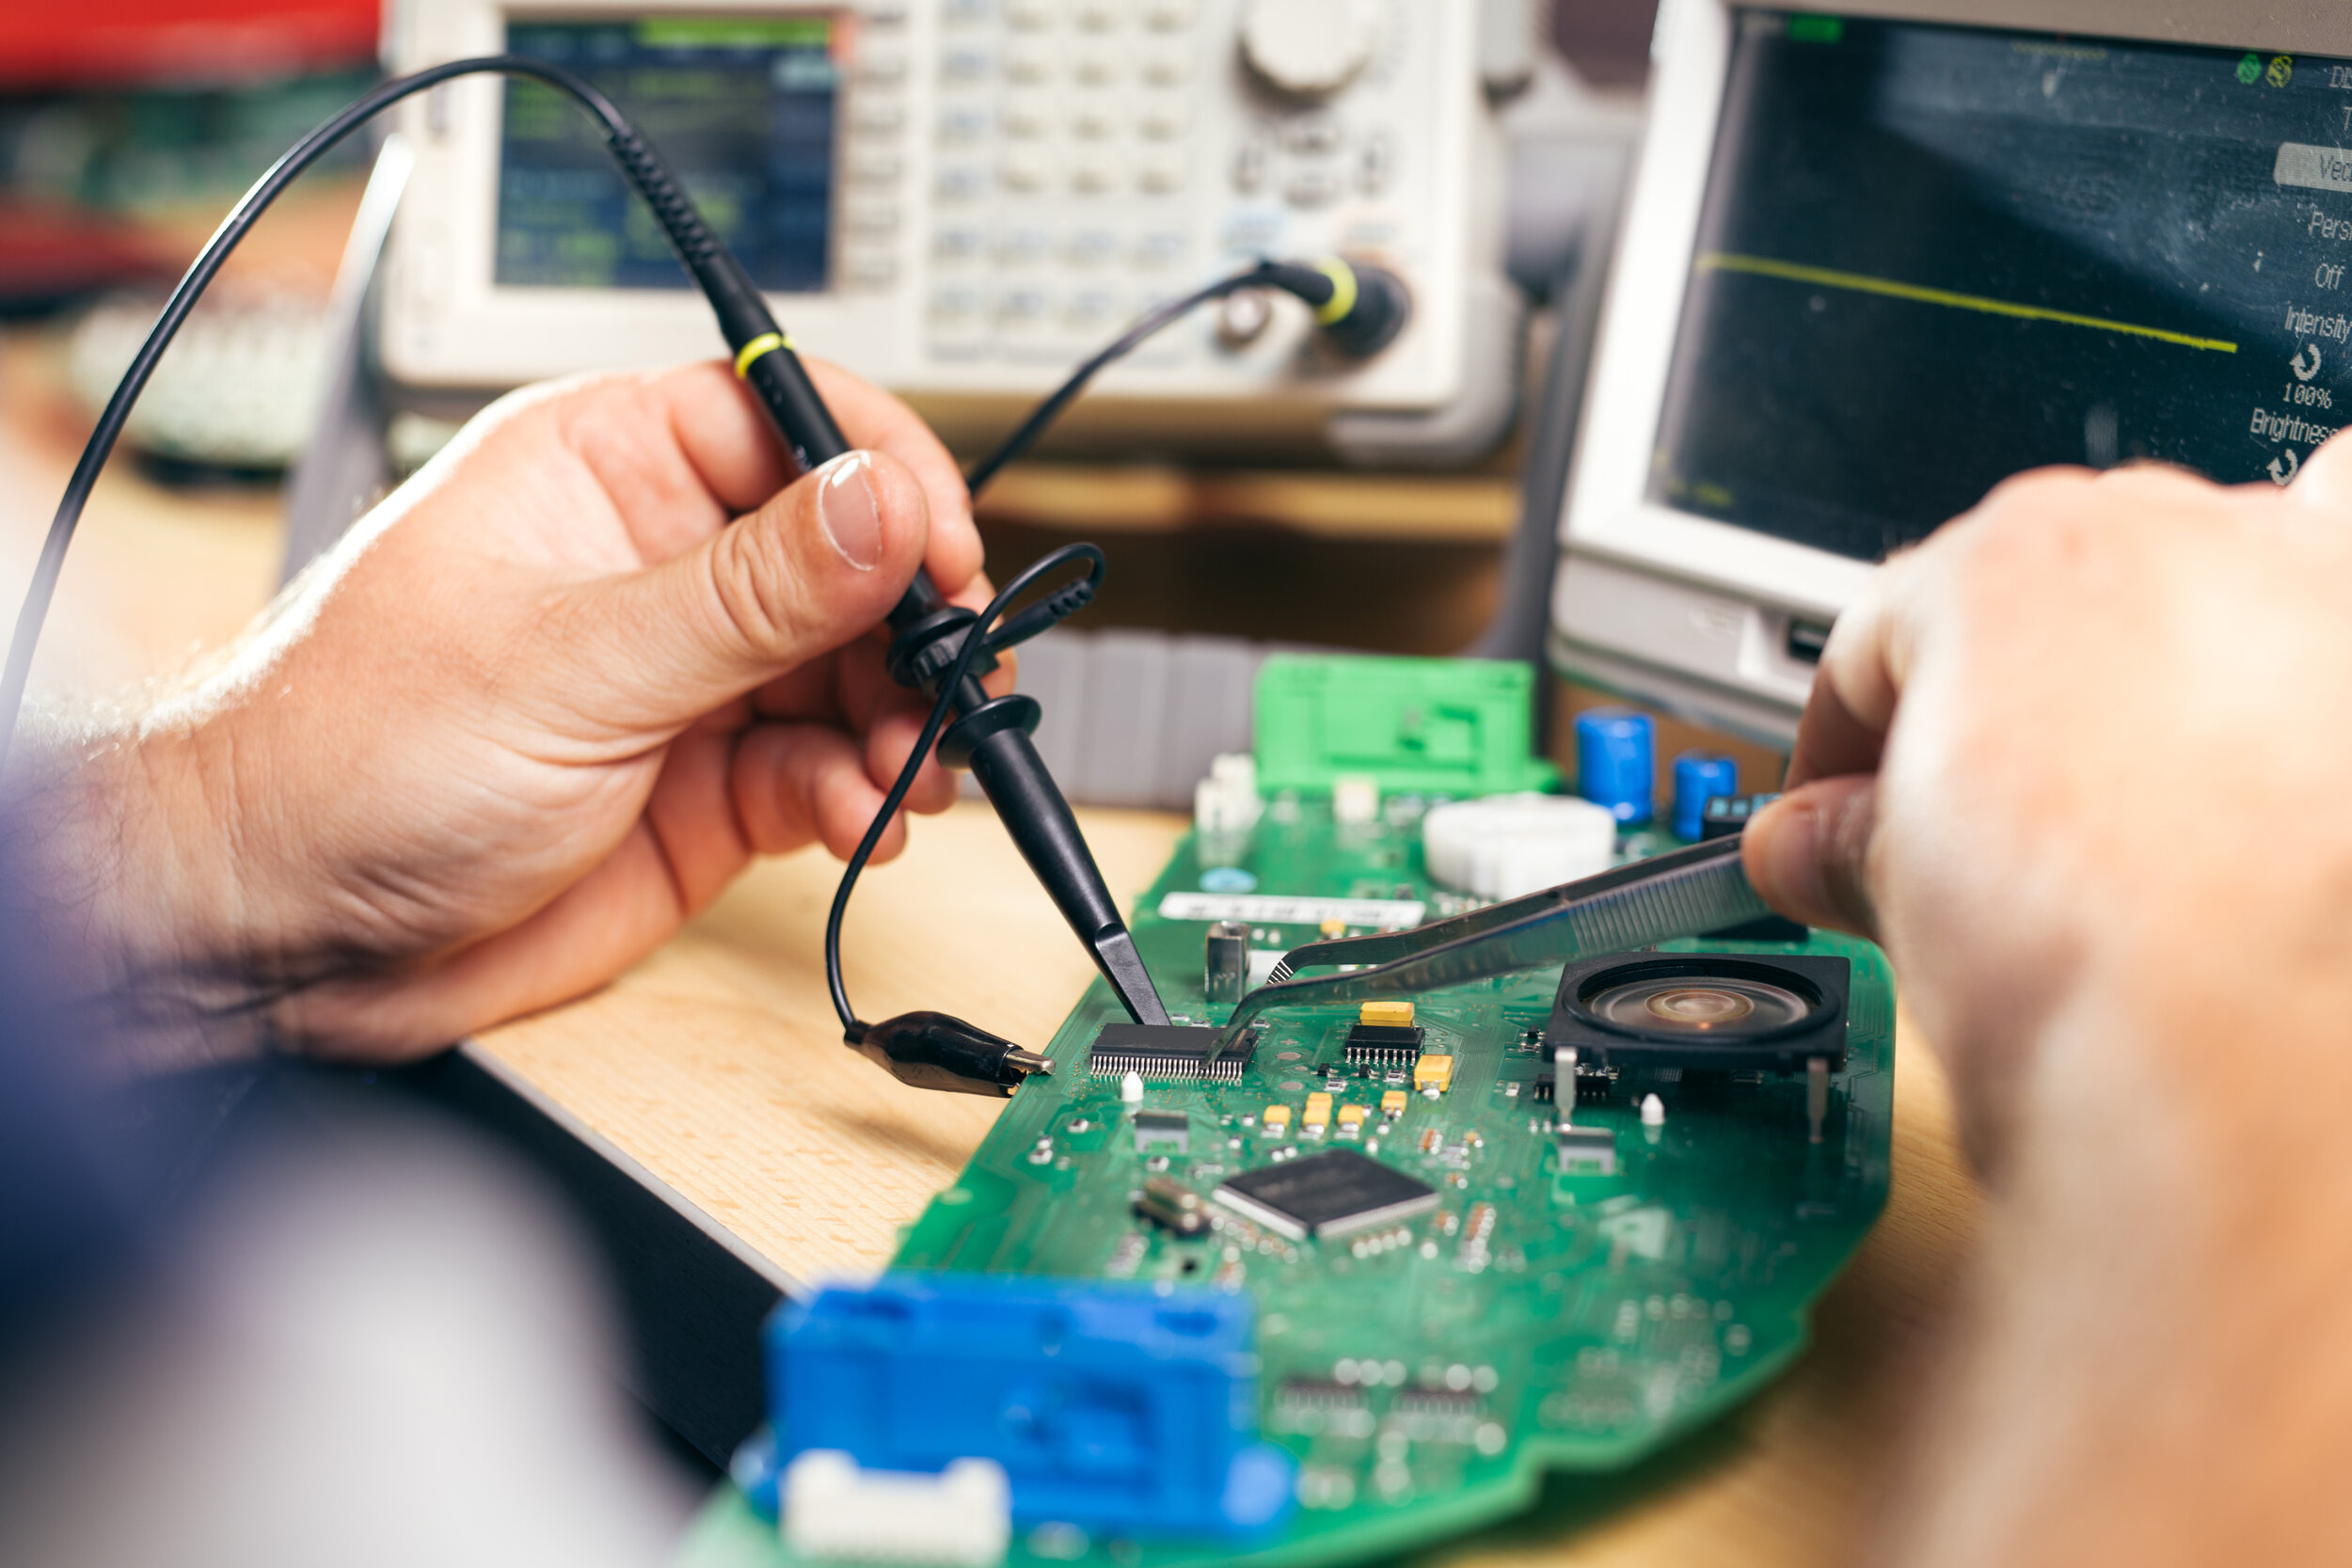 Who Are We? - From our origins in 1976, Auburn Metrology Lab (AML) has specialized in the calibration and repair of communications service monitors, watt meters, and other electronic test equipment.